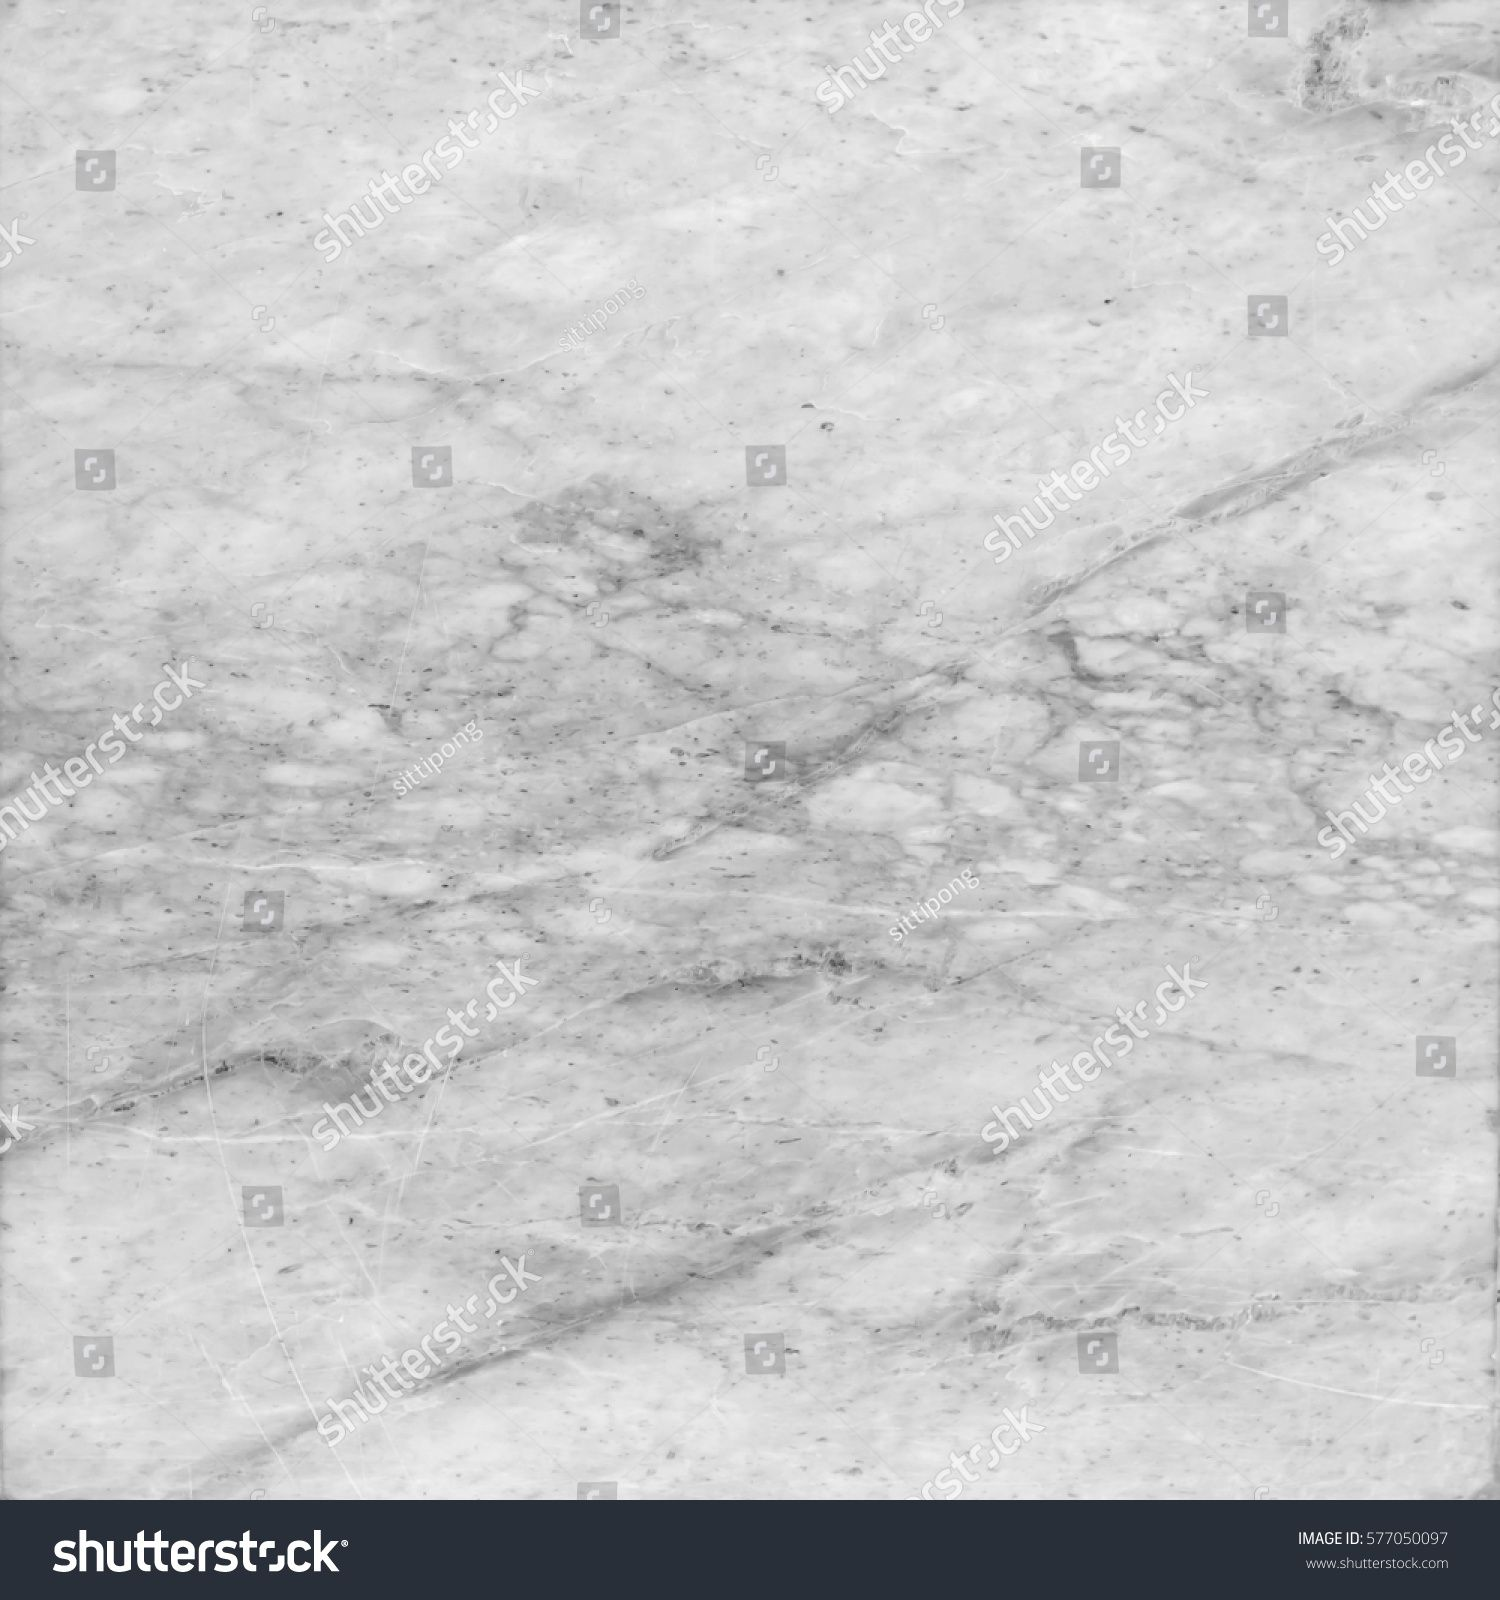 Marble With White Texture Background Free Image By Rawpixel Com Gray Texture Background Textured Background Marble White Texture